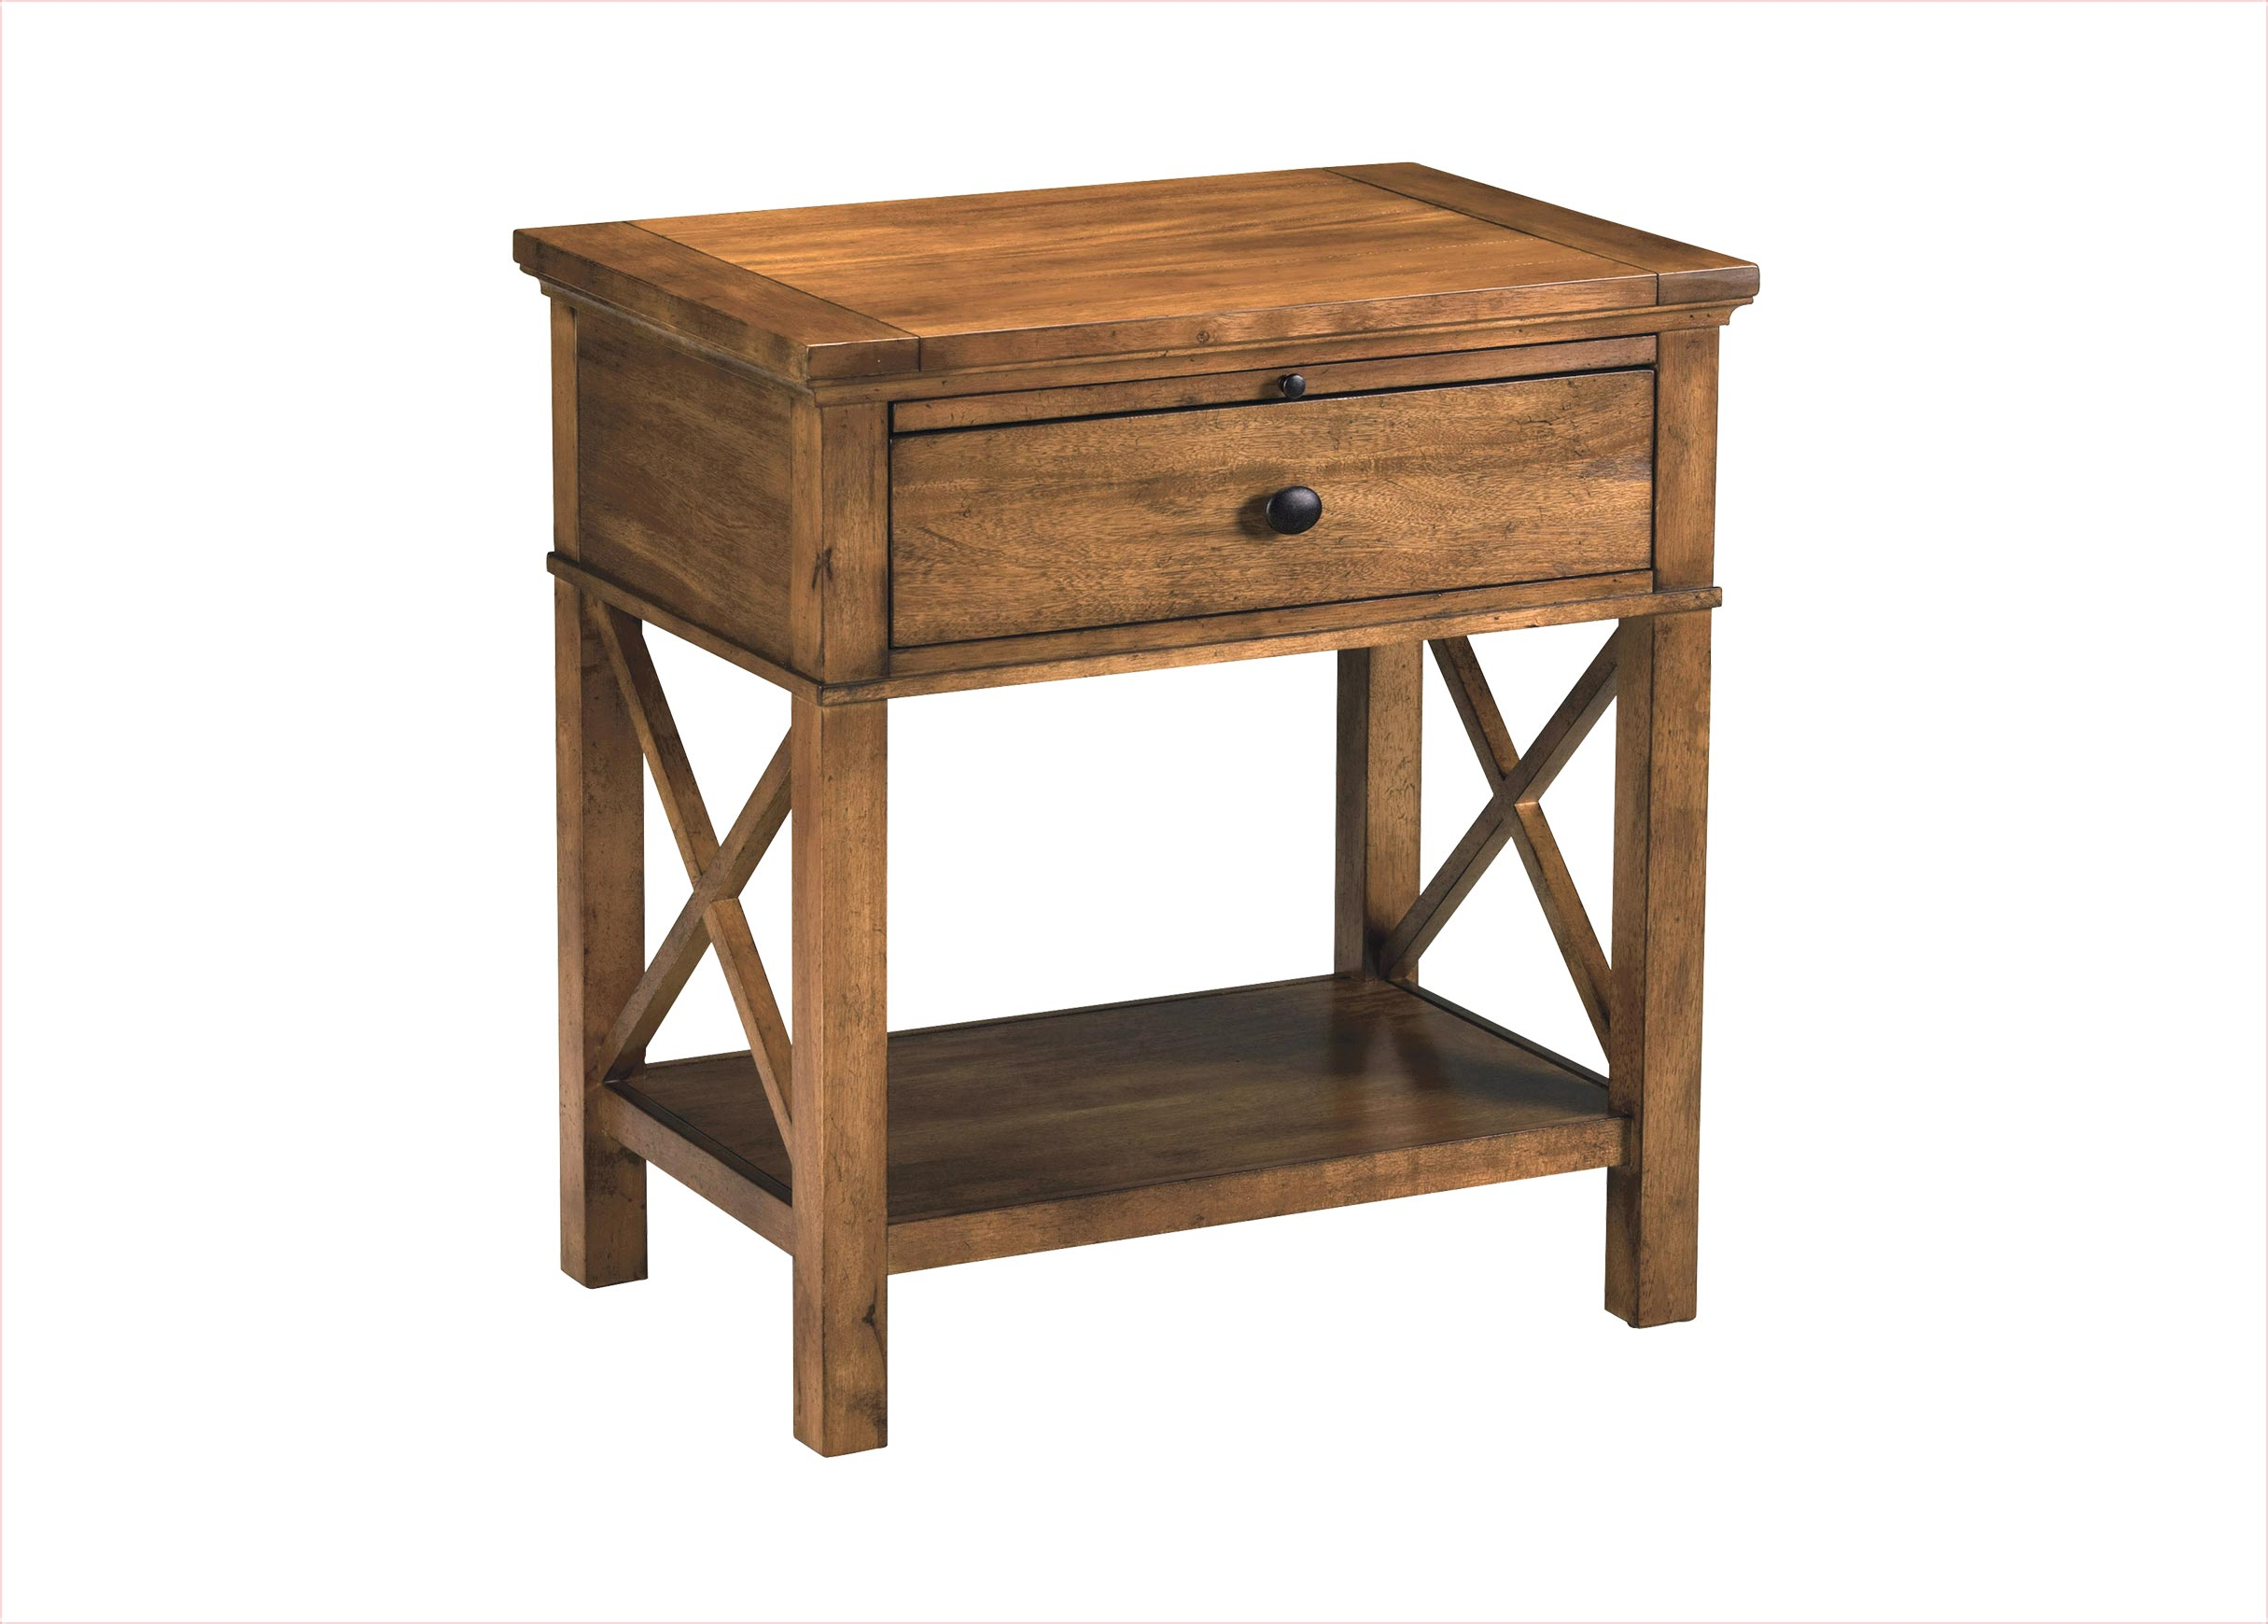 bedside tables and night stands ethan allen tall chloe accent table quick ship alec side cabinet foyer furniture pieces coffee plans what trestle lamp shades for small lamps usb